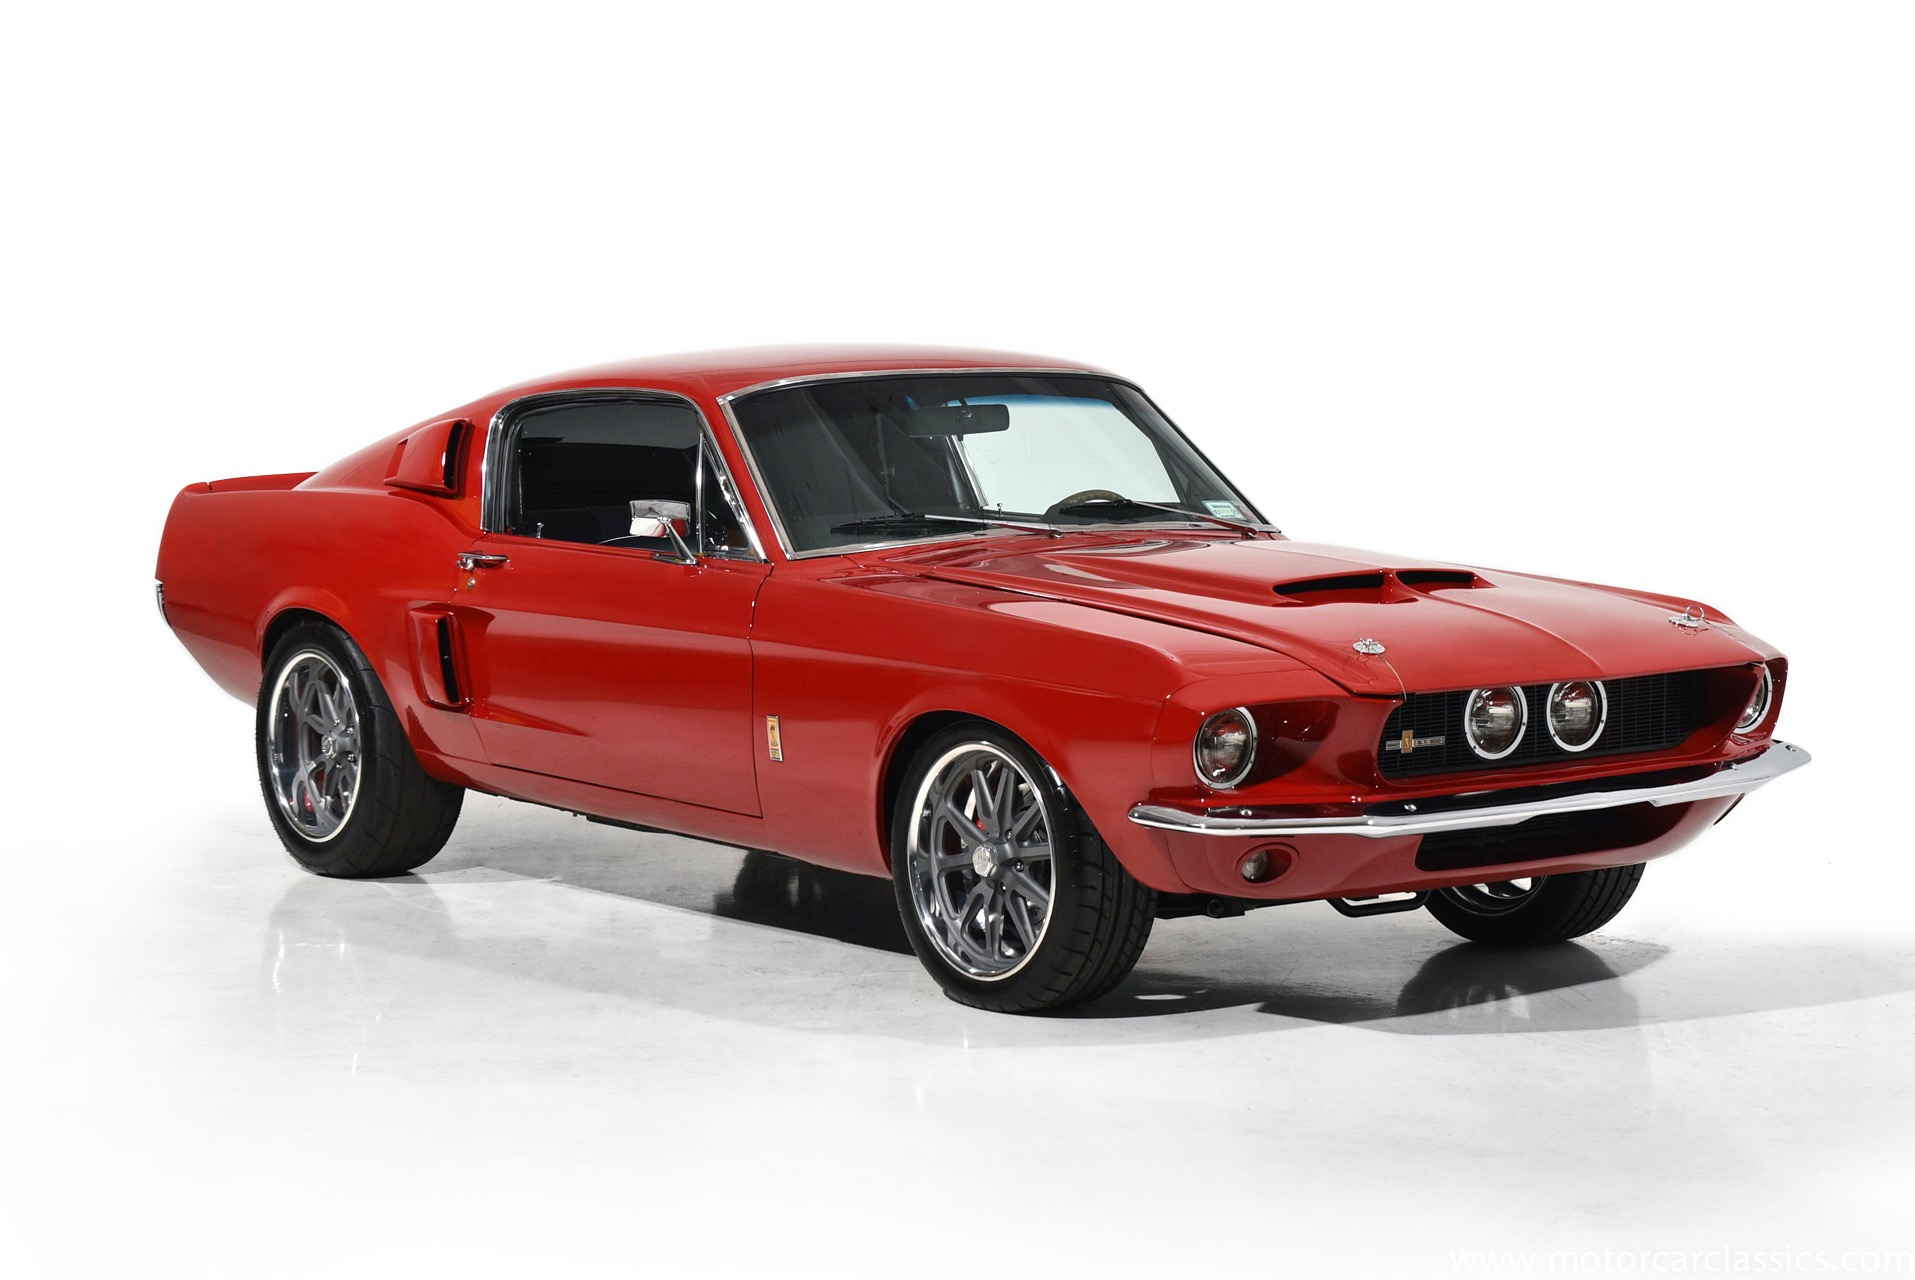 Used 1967 Ford Mustang Gt500 Eleanor For Sale 136 900 Motorcar Classics Stock 1636